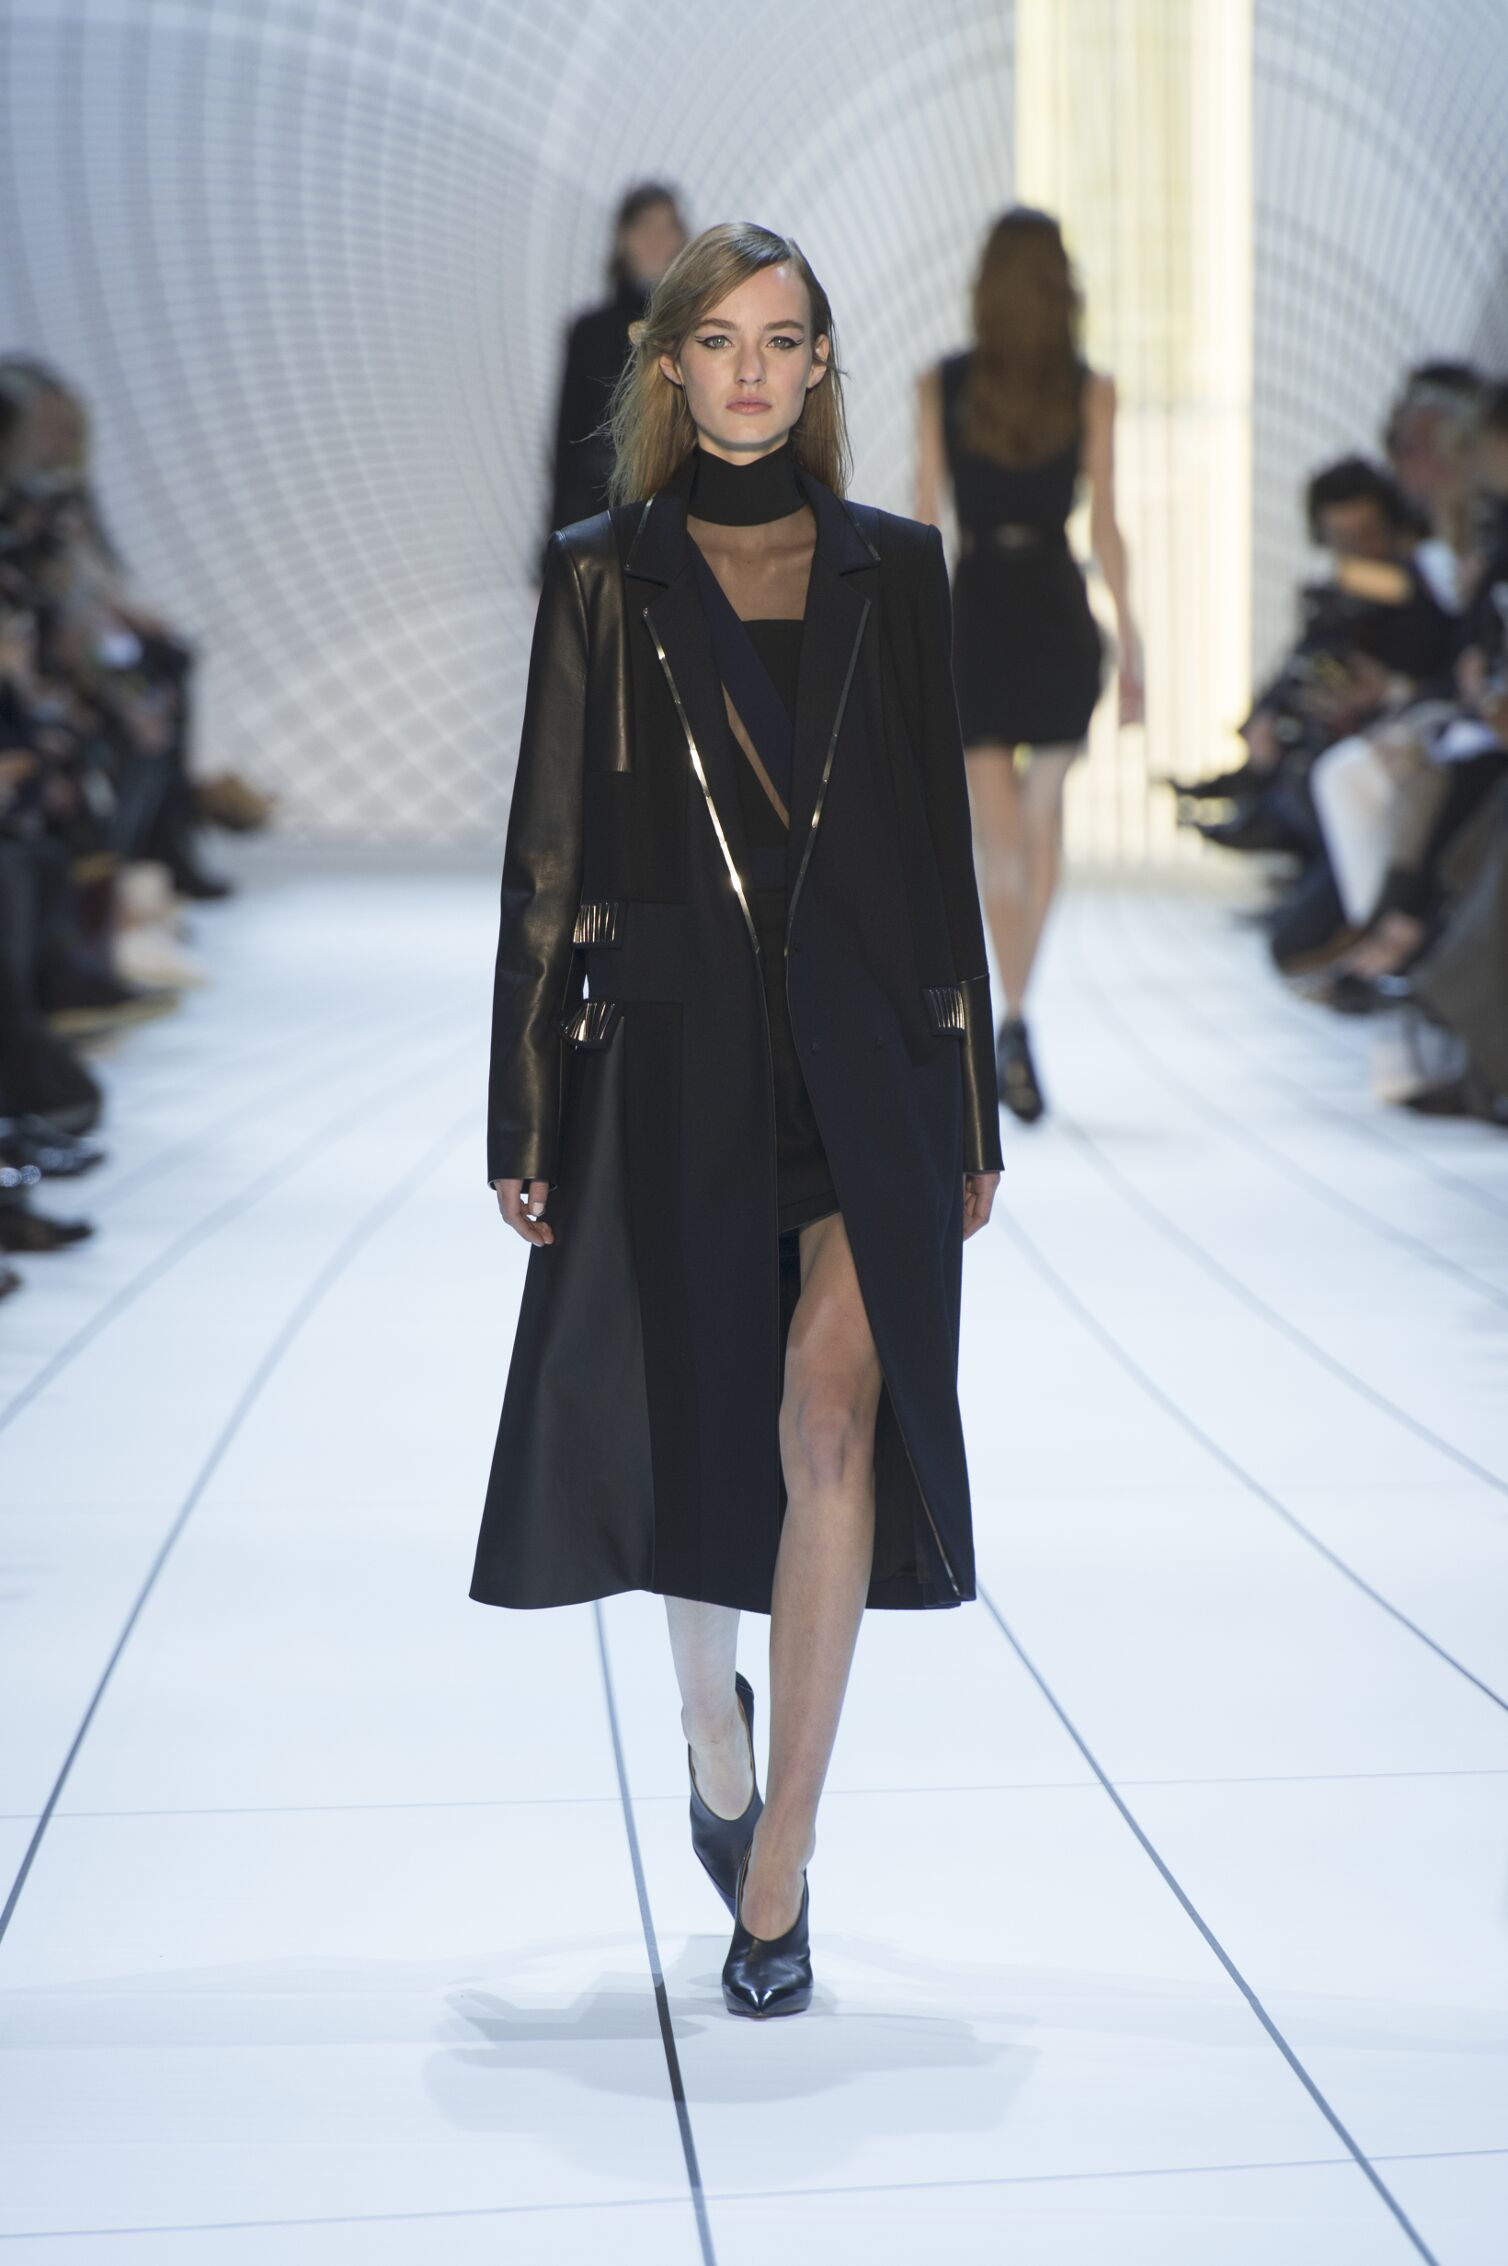 Fall Winter 2015 16 Fashion Collection Mugler